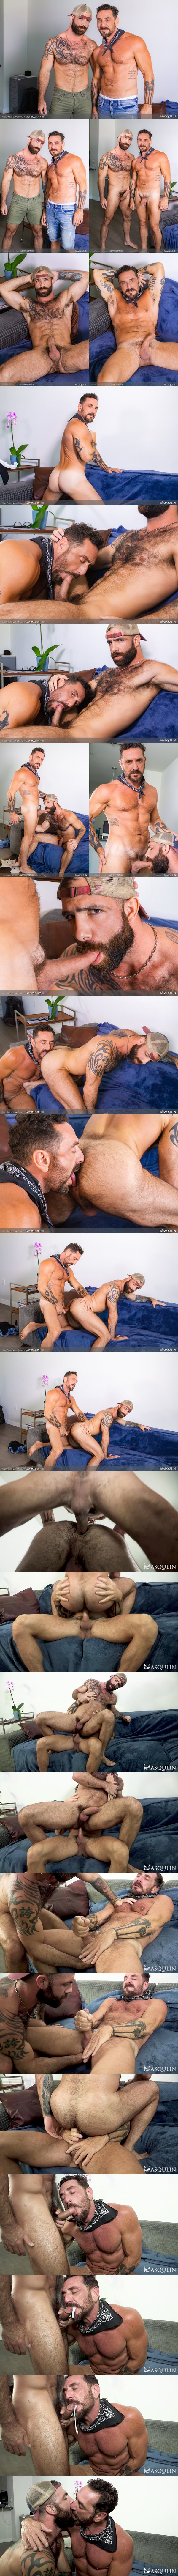 Masculine daddy Vince Parker barebacks inked bearded stud Jake Nicola before Jake fingers the cum out of Vince and cums in Vince's mouth in Anonymous Catfish at Masqulin 01